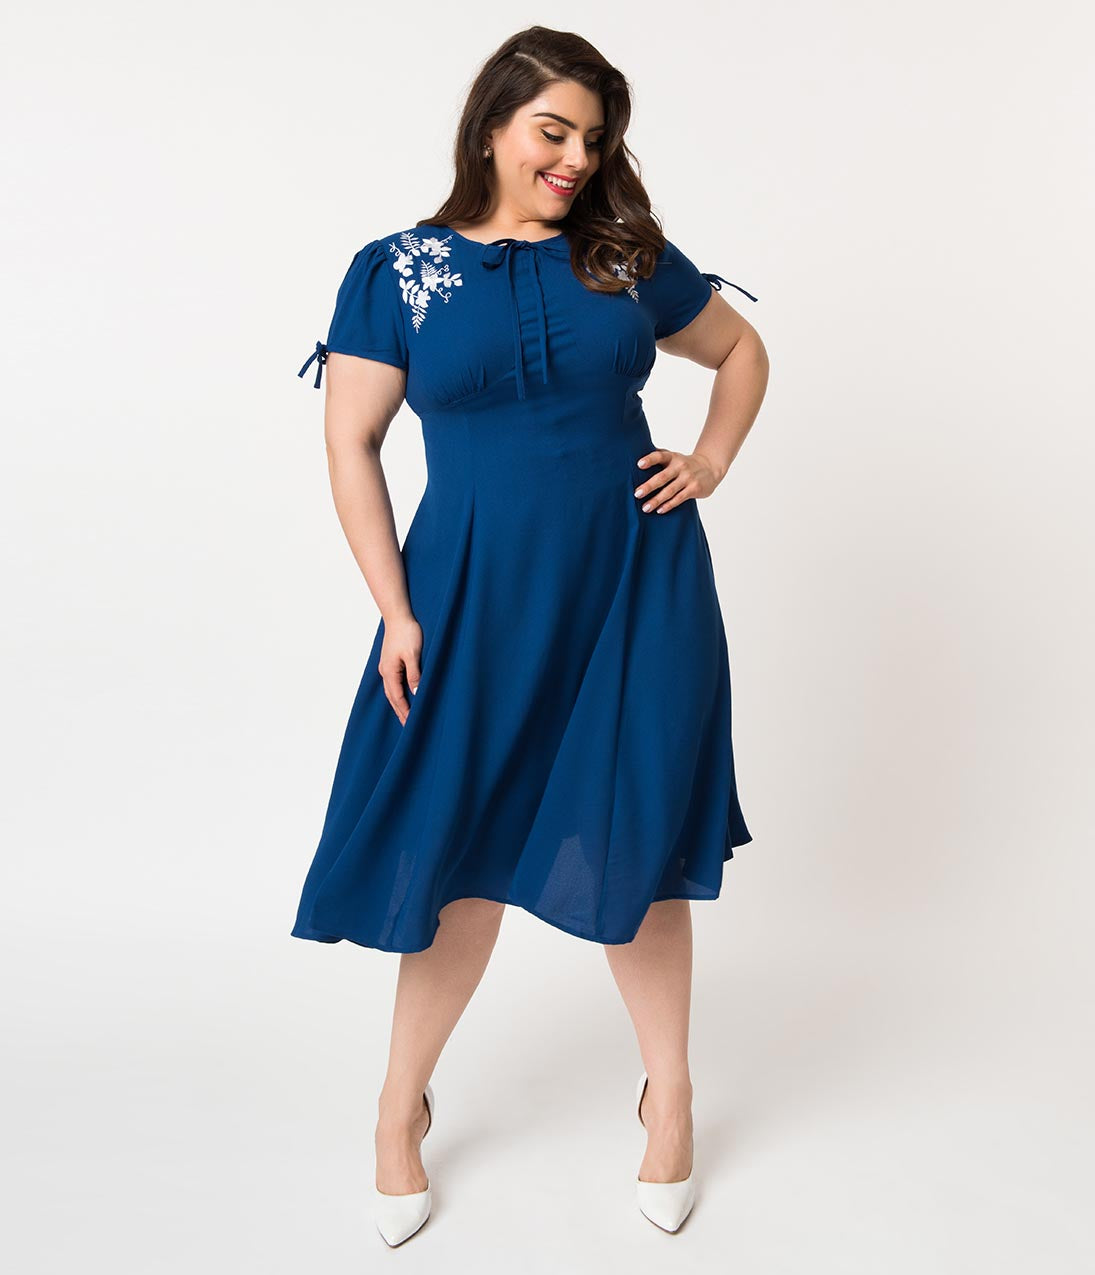 500 Vintage Style Dresses for Sale | Vintage Inspired Dresses Plus Size 1940S Style Royal Blue Crepe  White Embroidered Floral Ava Swing Dress $78.00 AT vintagedancer.com